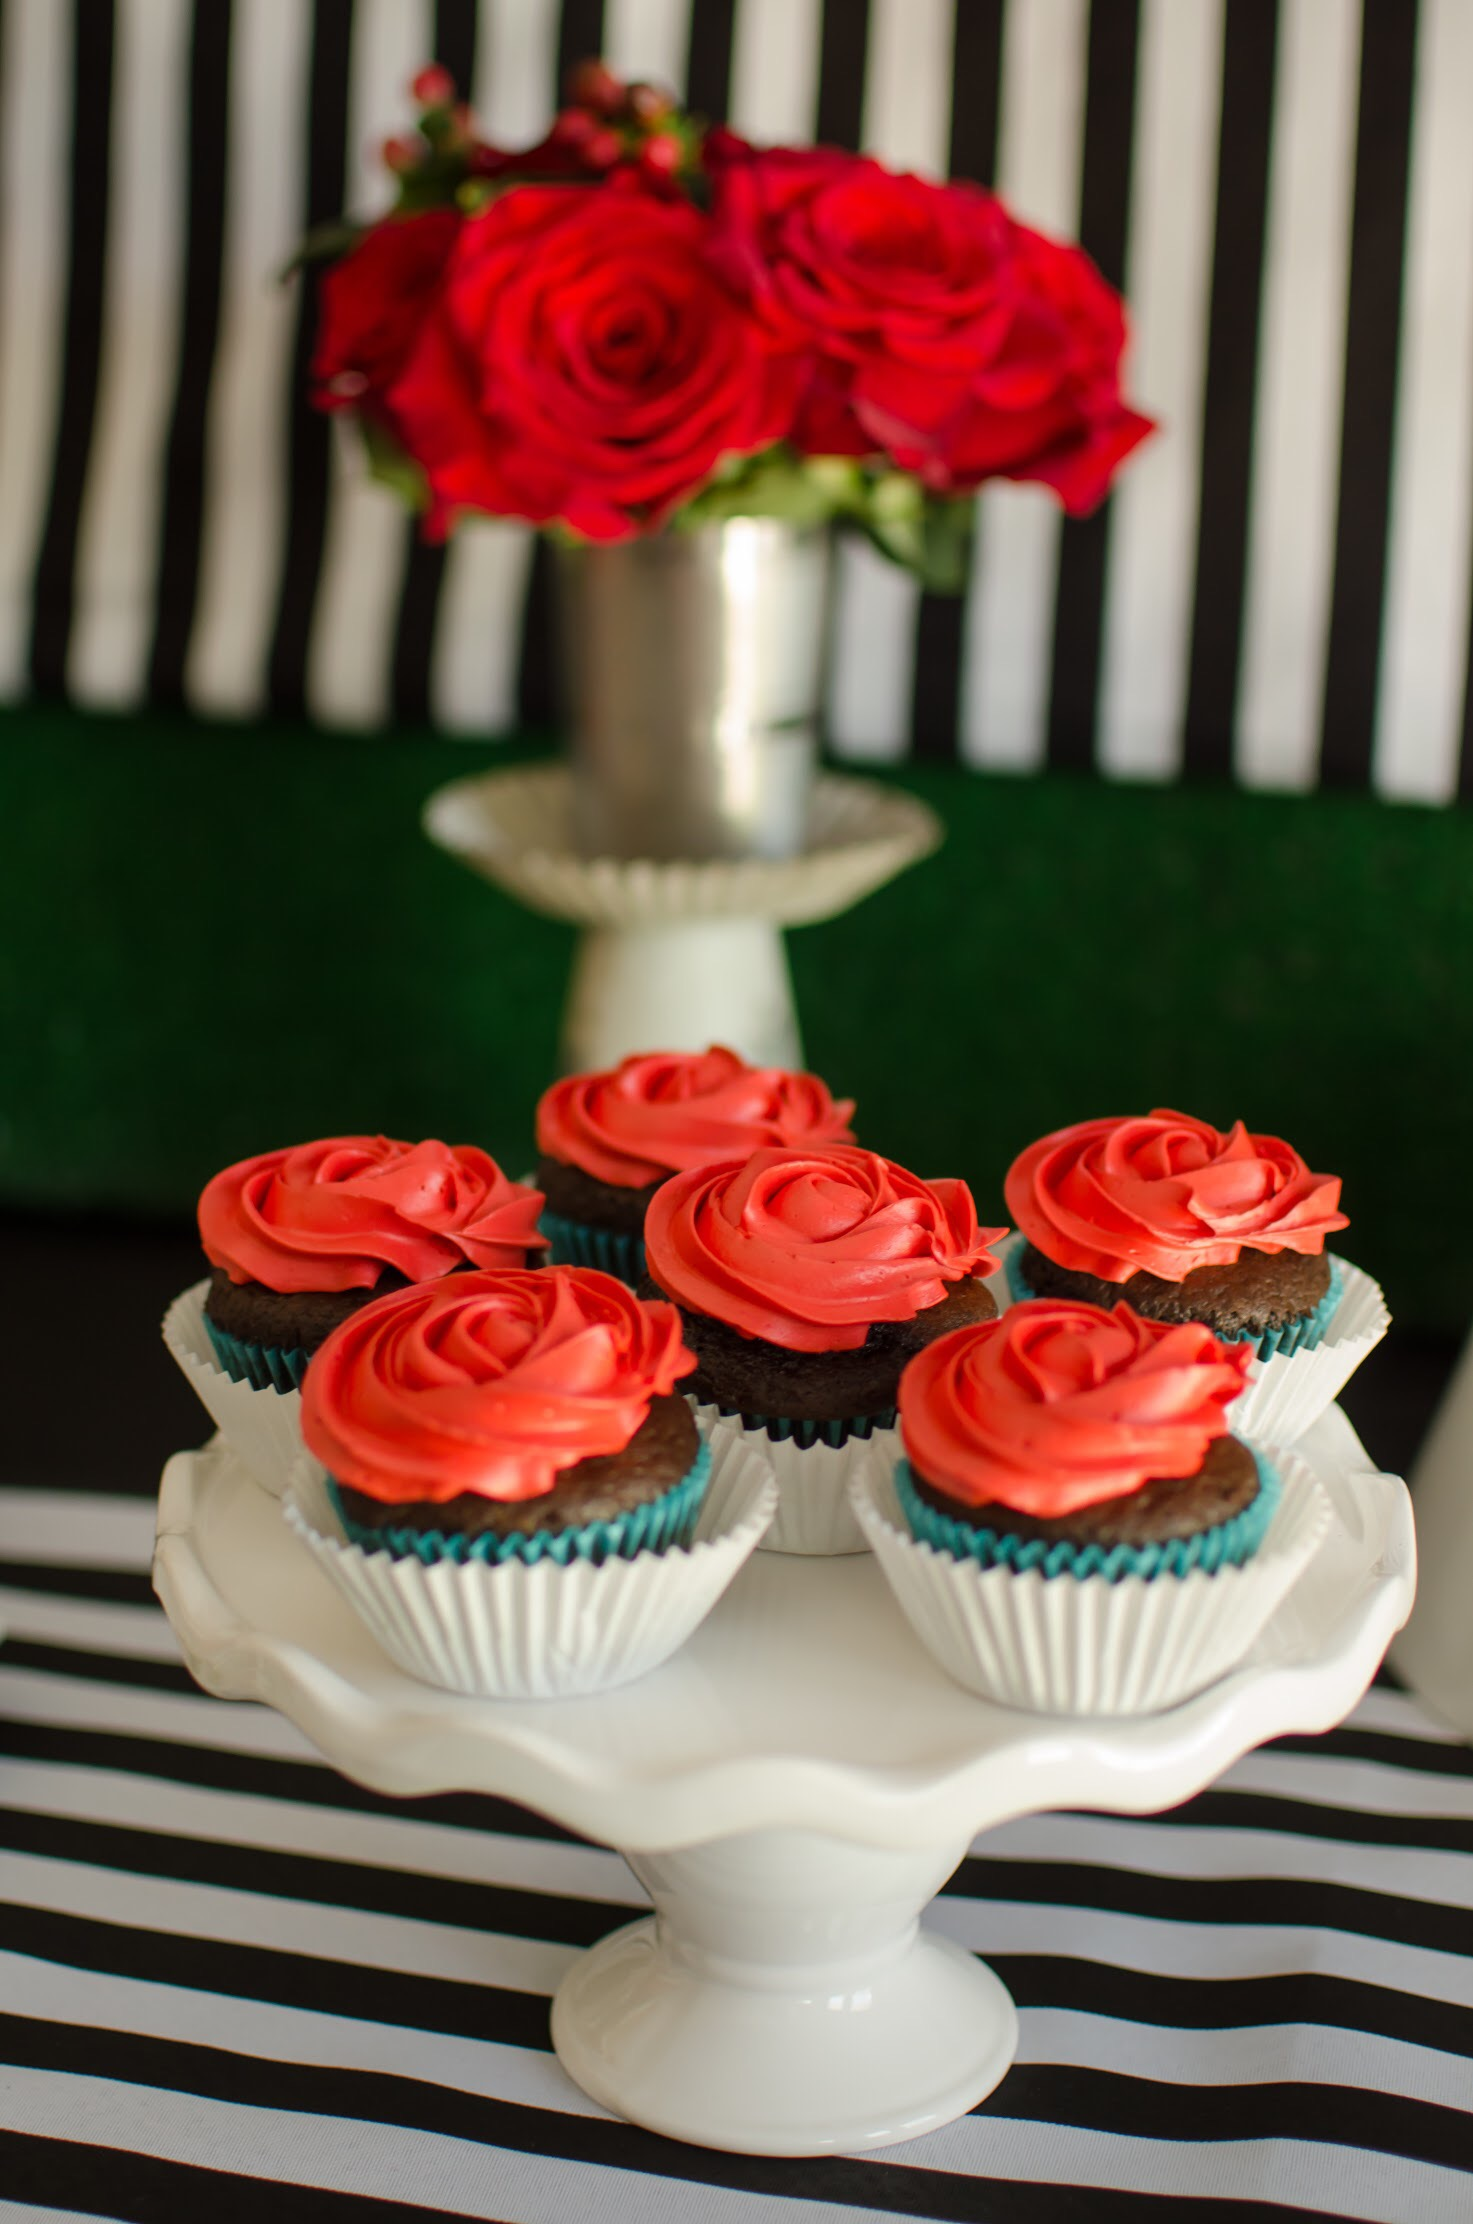 Run for the Roses Kentucky Derby Cupcakes frosted with red roses. Styling by party planner Mint Event Design www.minteventdesign.com